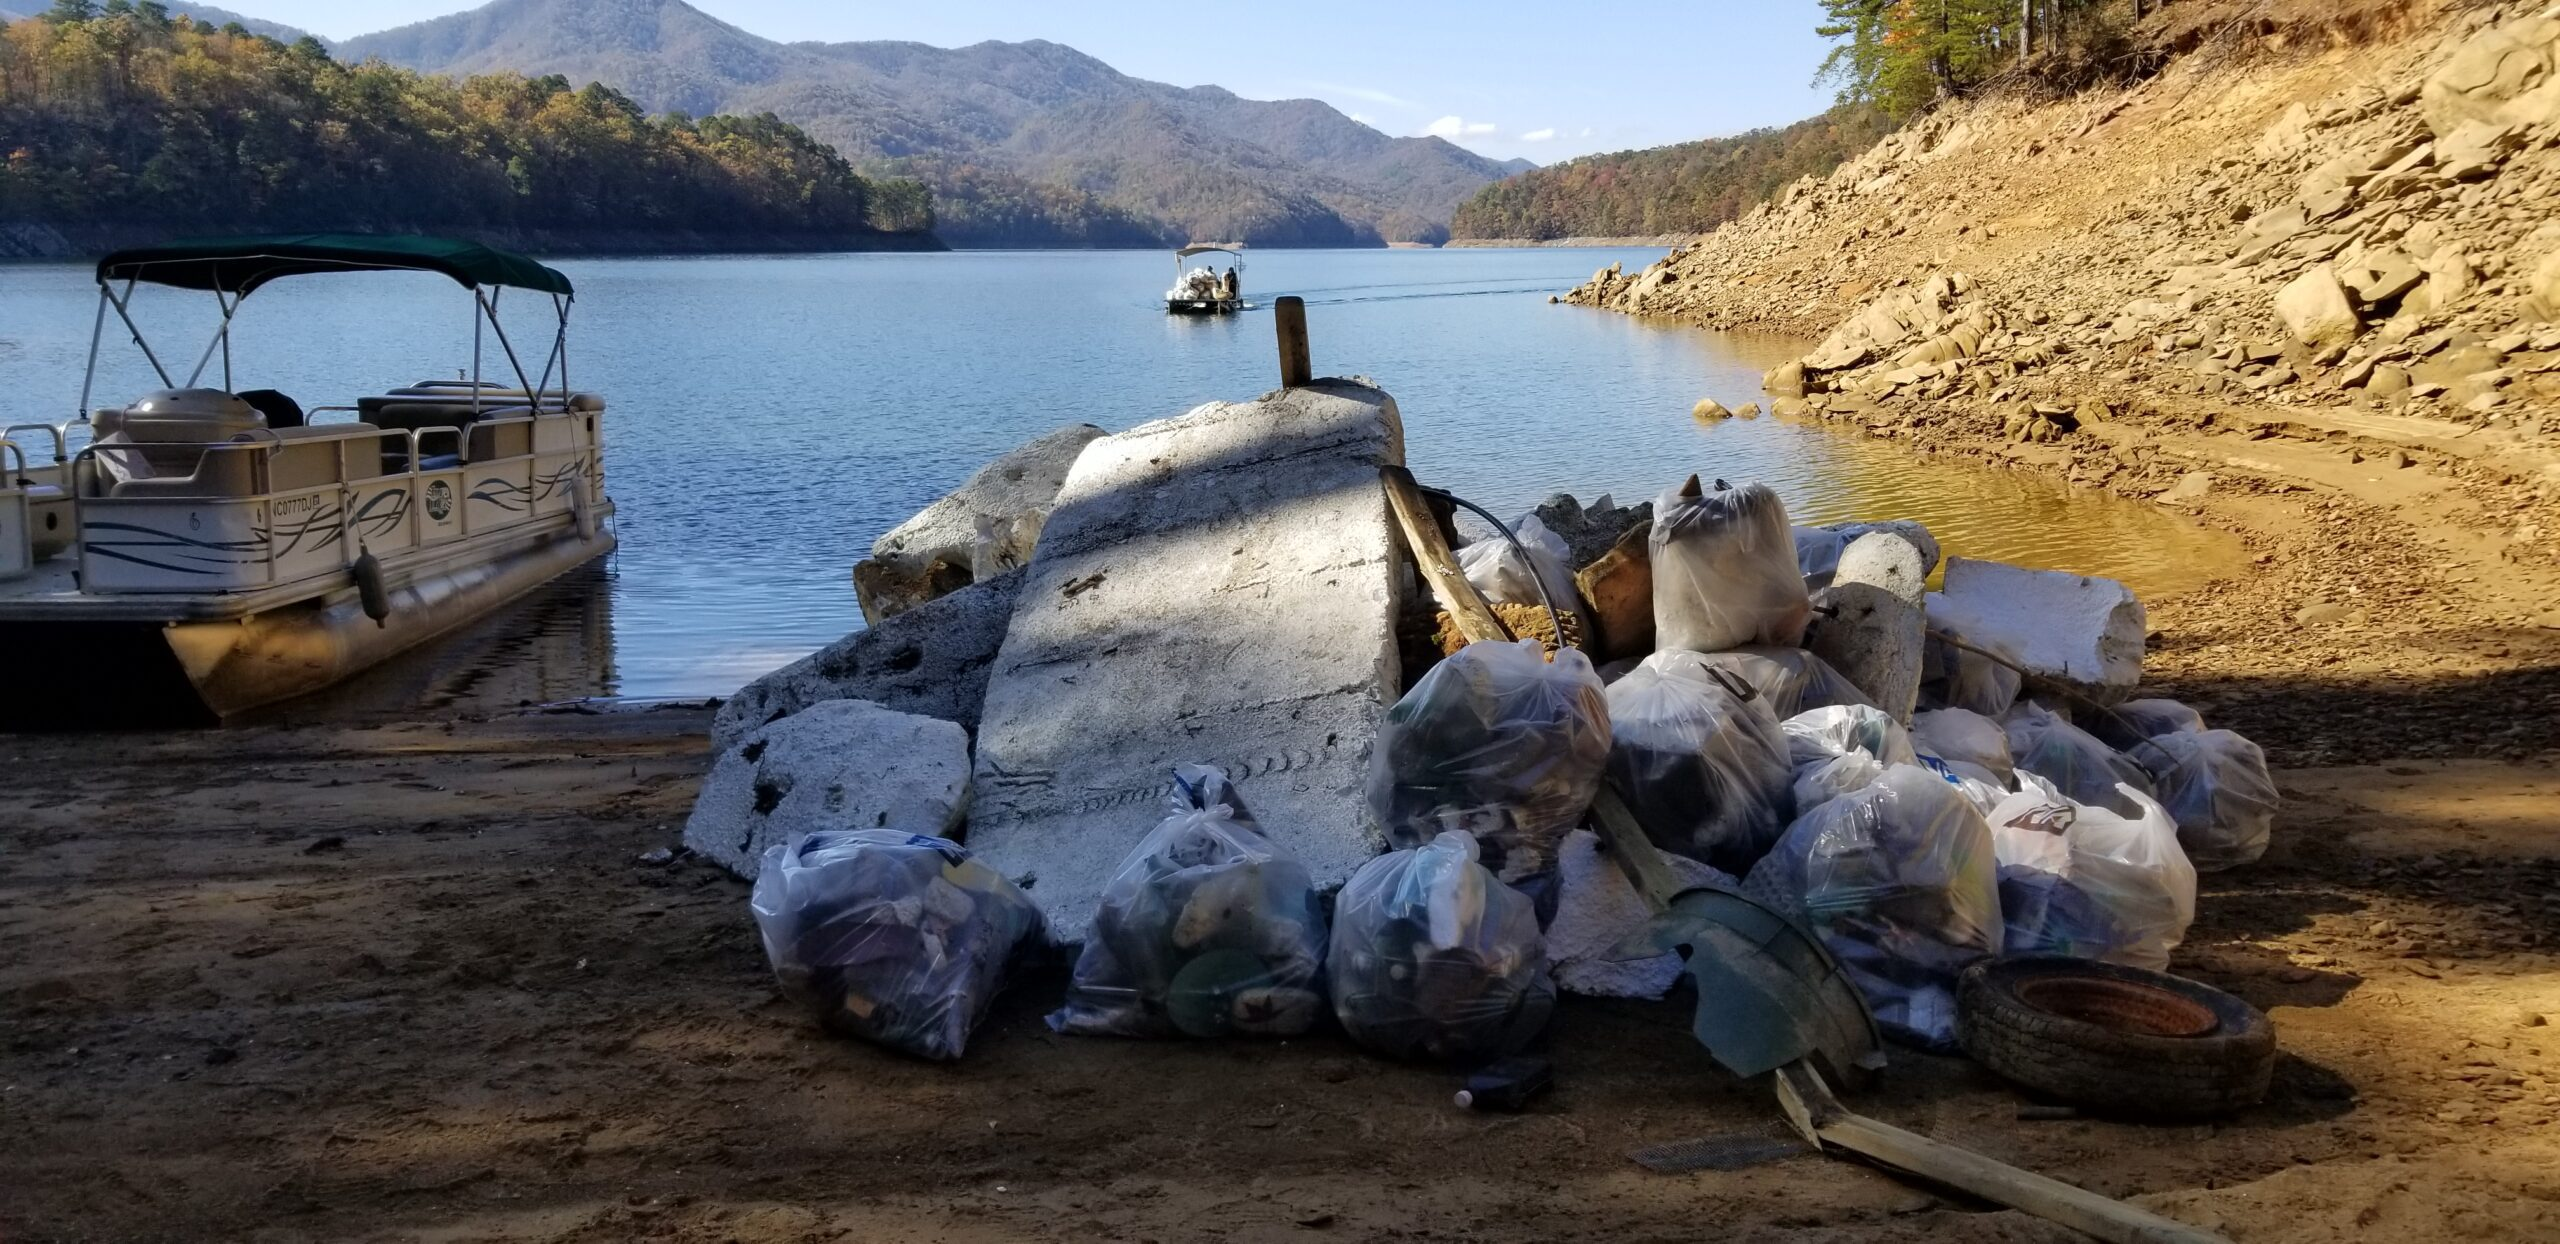 NCWF needs volunteers for the 4th annual Fontana Lake Shore Cleanup event held in western North Carolina, Nov. 5-7.